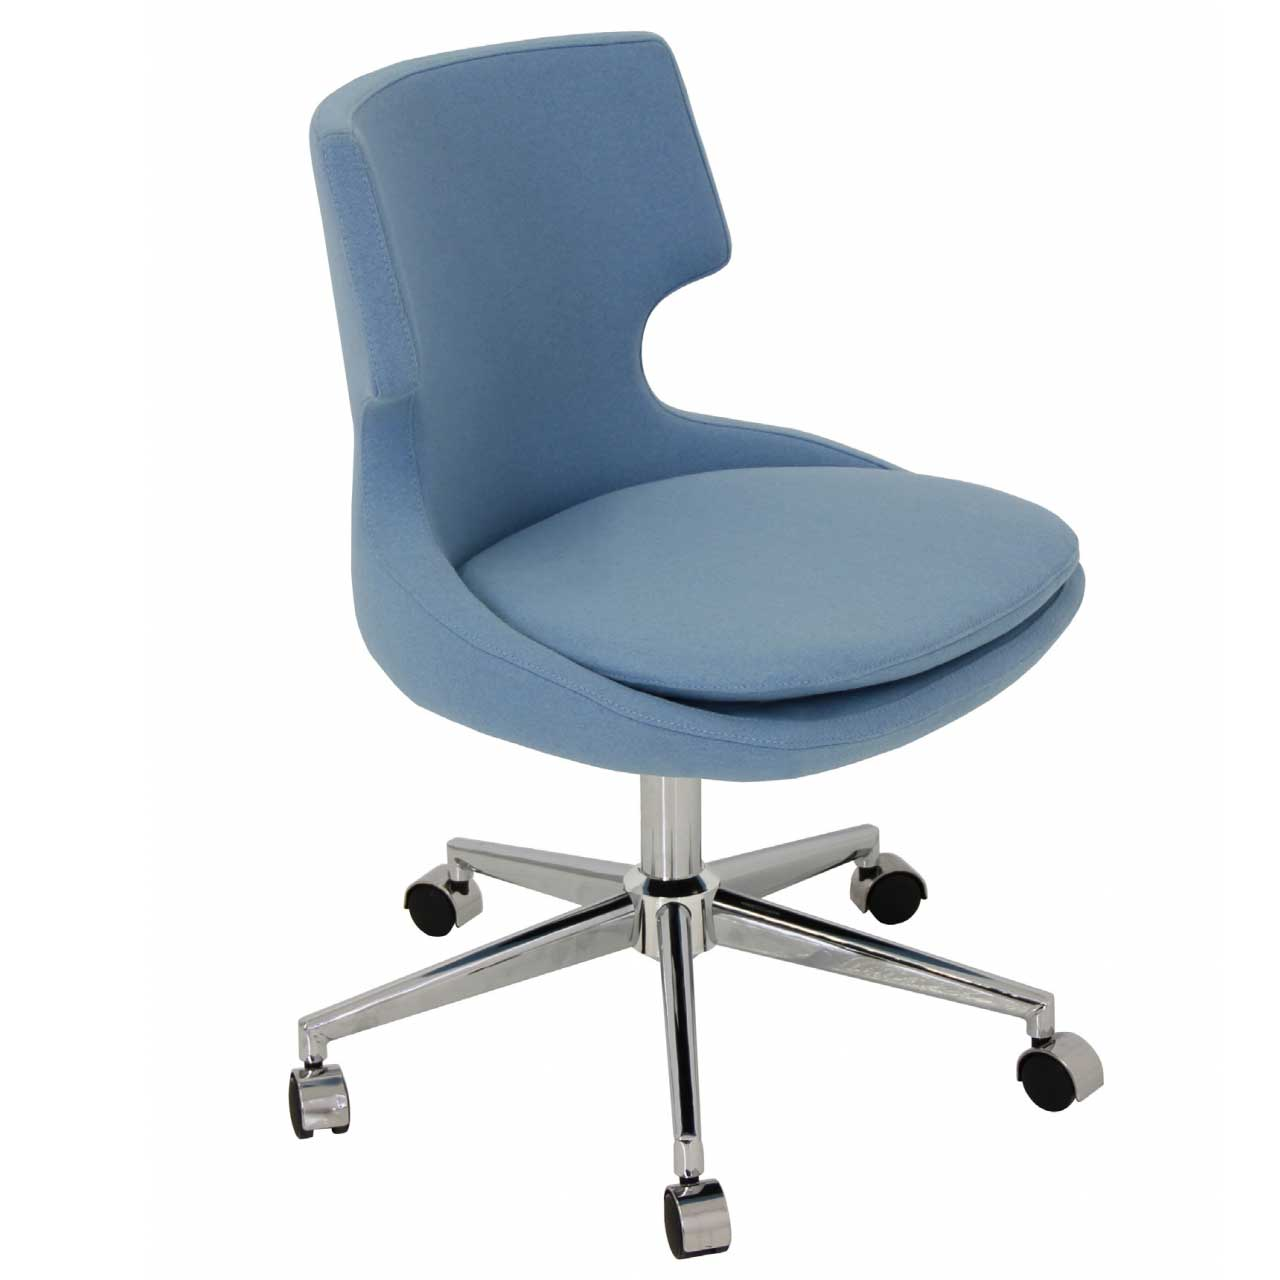 Ergonomic Office Chairs Office Chairs Office Furniture